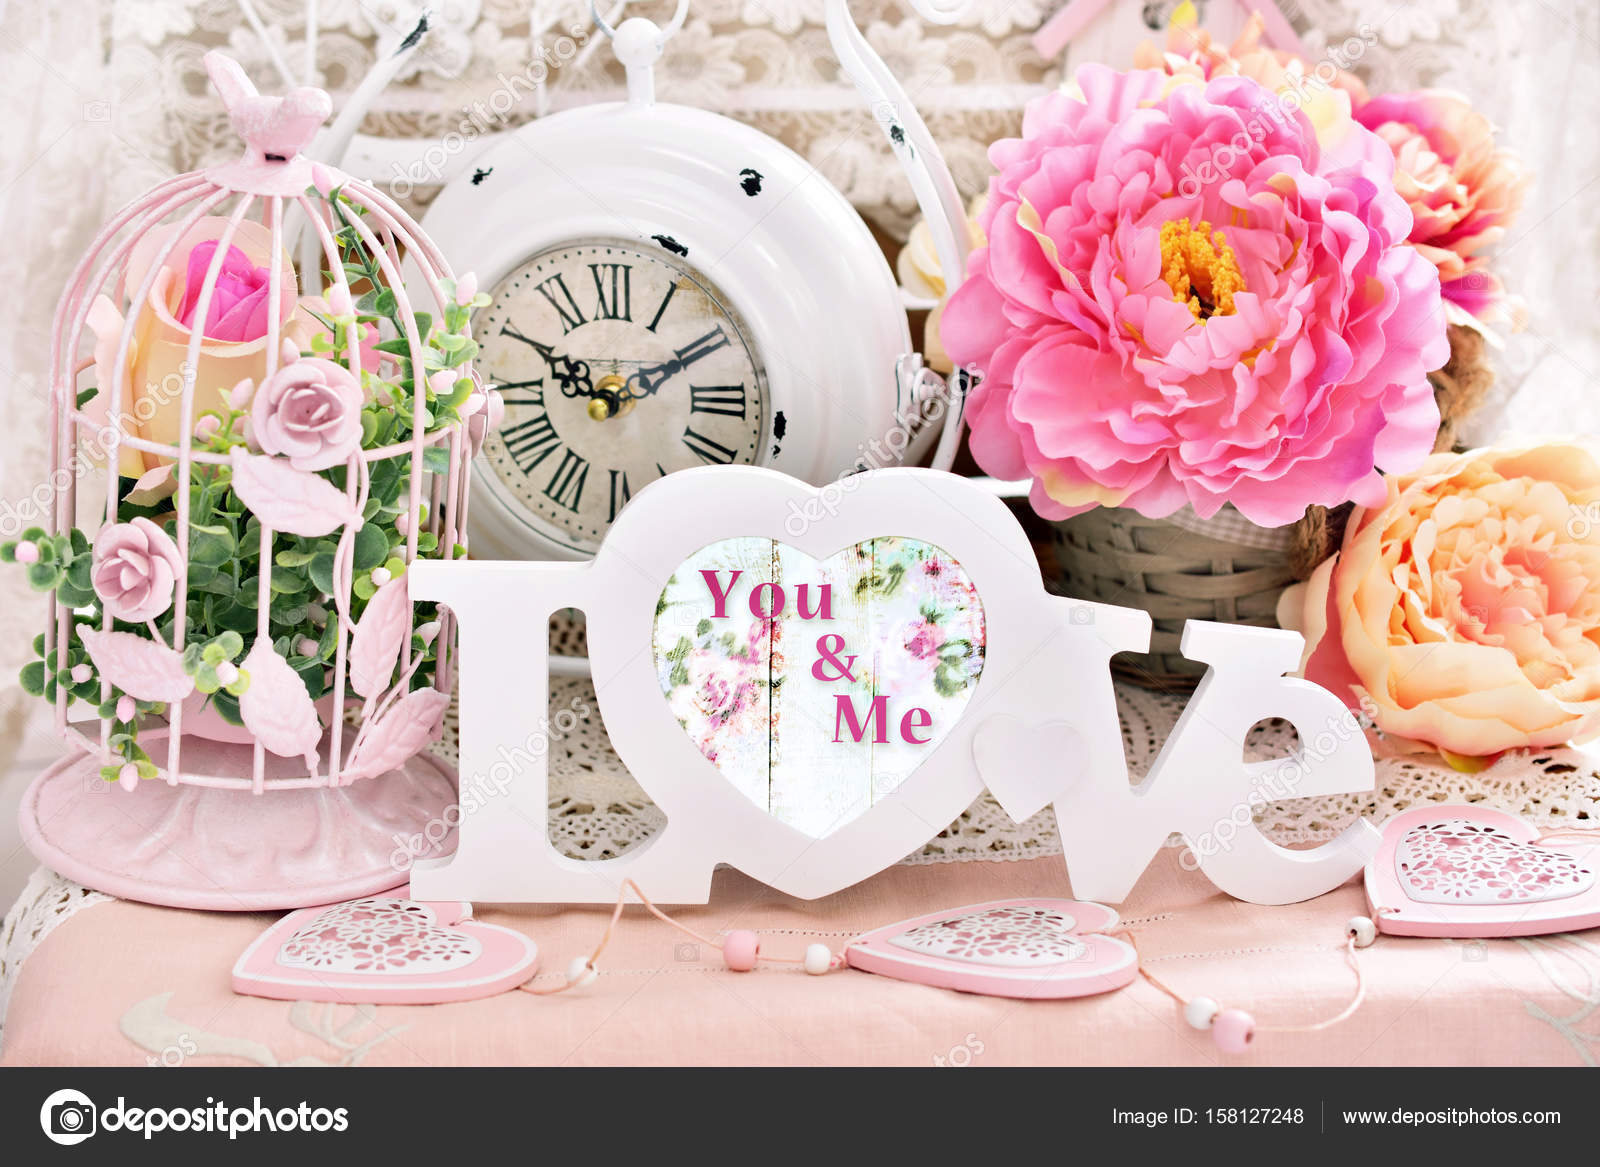 Romantic Shabby Chic Love Decoration Stock Photo C Teresaterra - Decoracion-shabby-chic-vintage